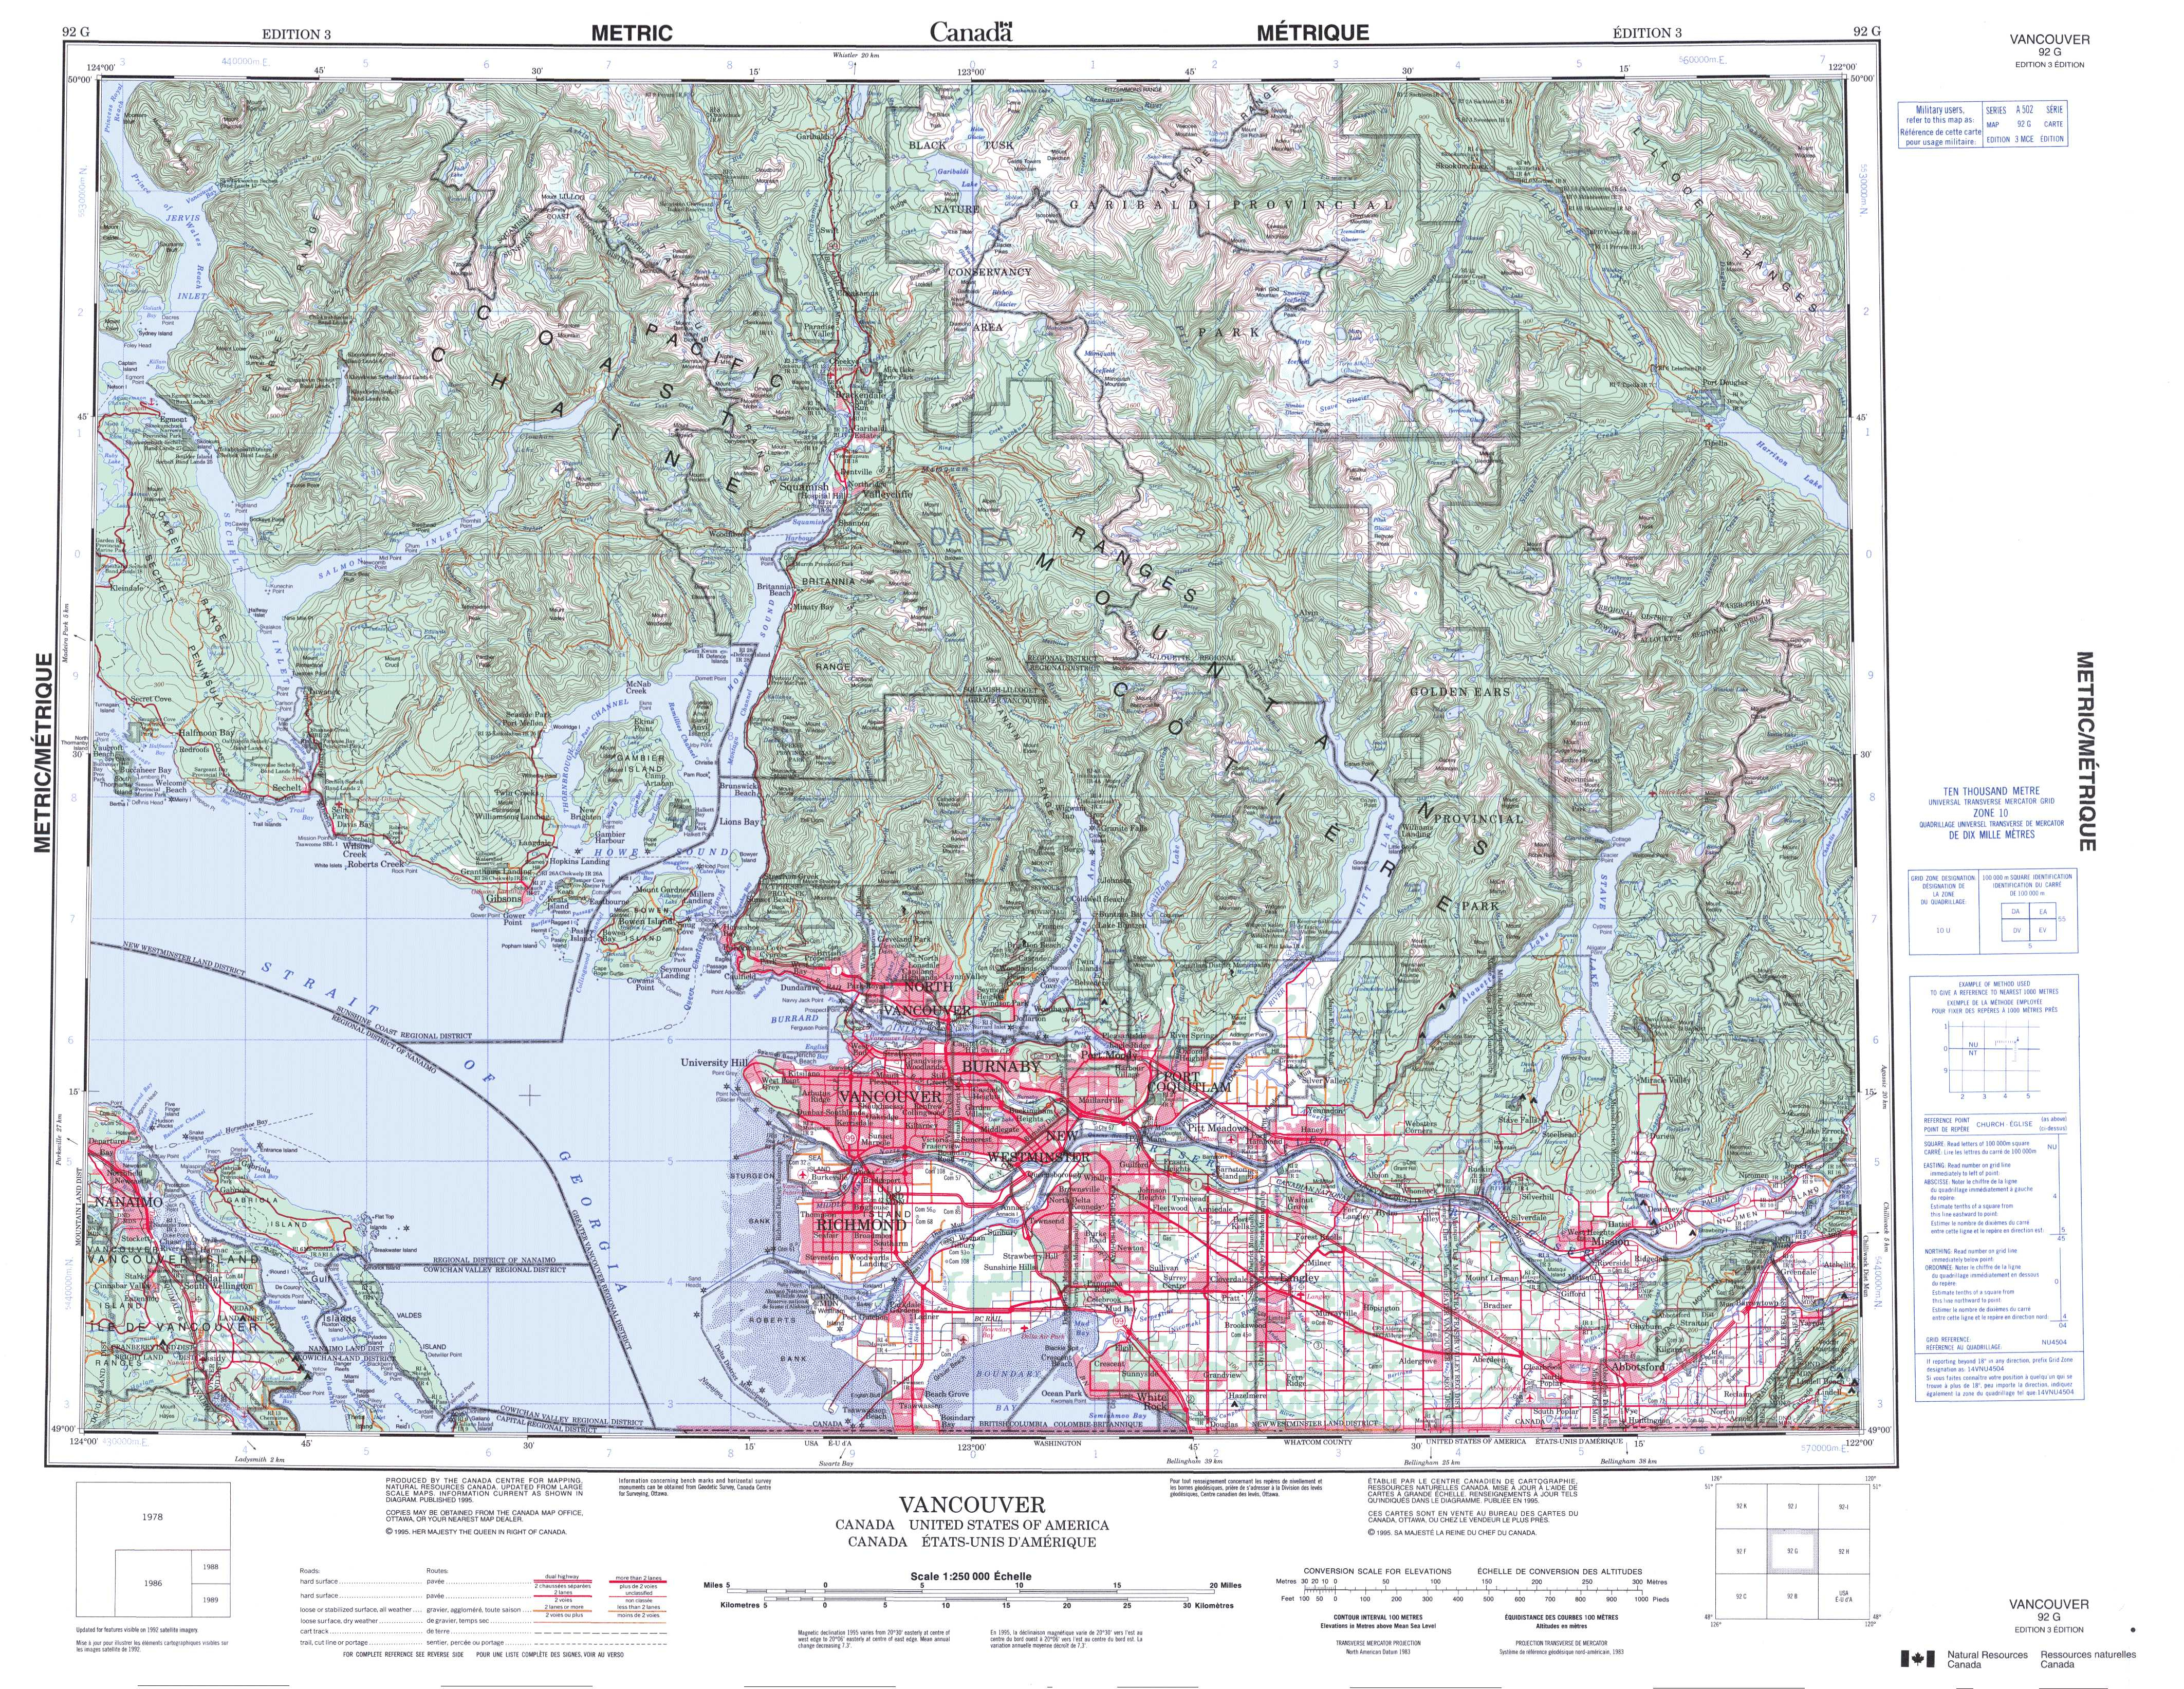 Printable Topographic Map Of Vancouver 092G, Bc - Free Printable Topo Maps